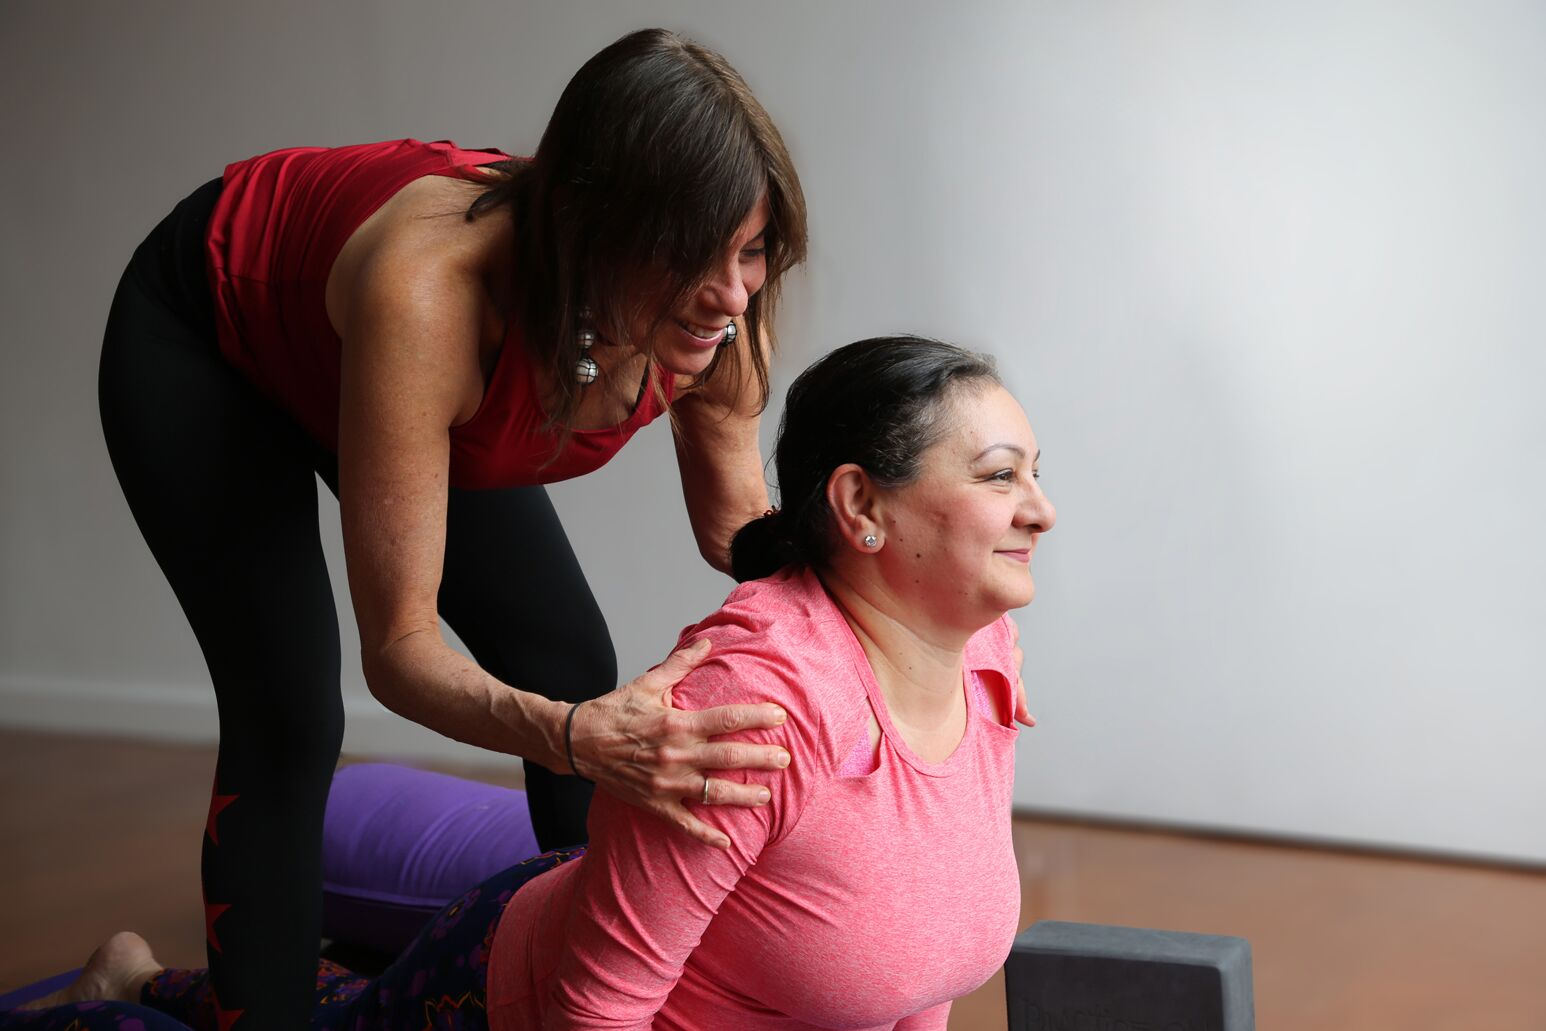 Kathy Khodadadi with her yoga trainer